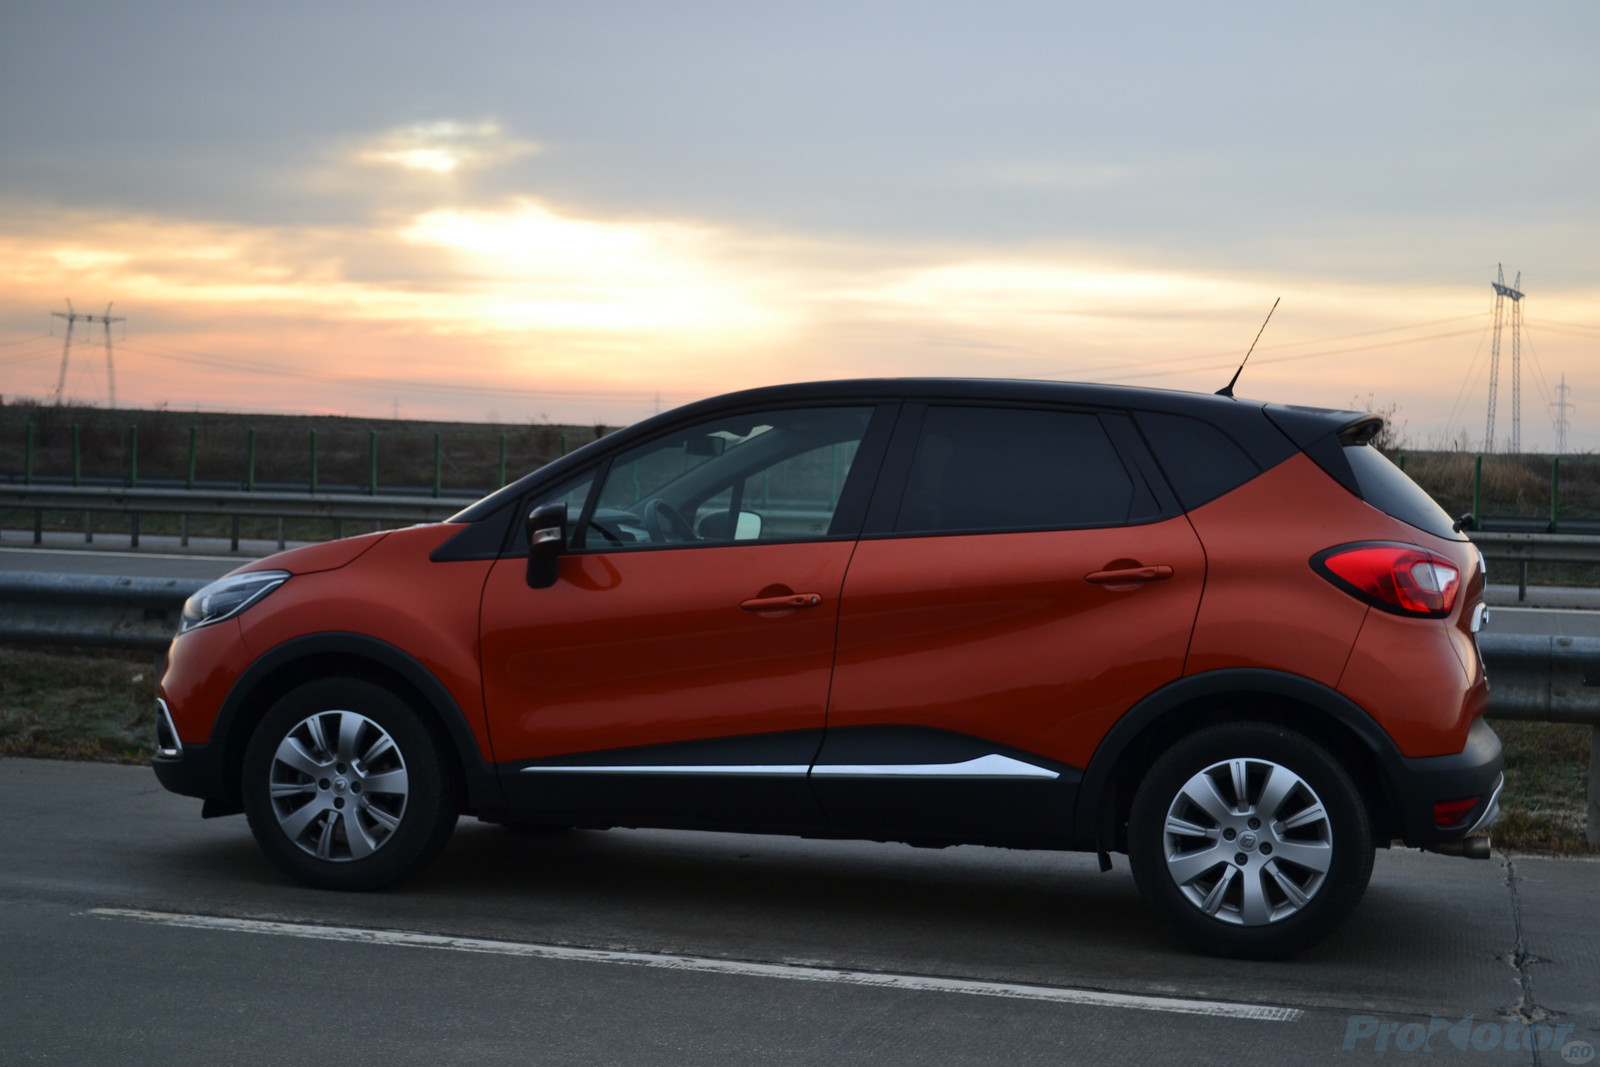 imagini test renault captur 1 2 tce turbo fun. Black Bedroom Furniture Sets. Home Design Ideas